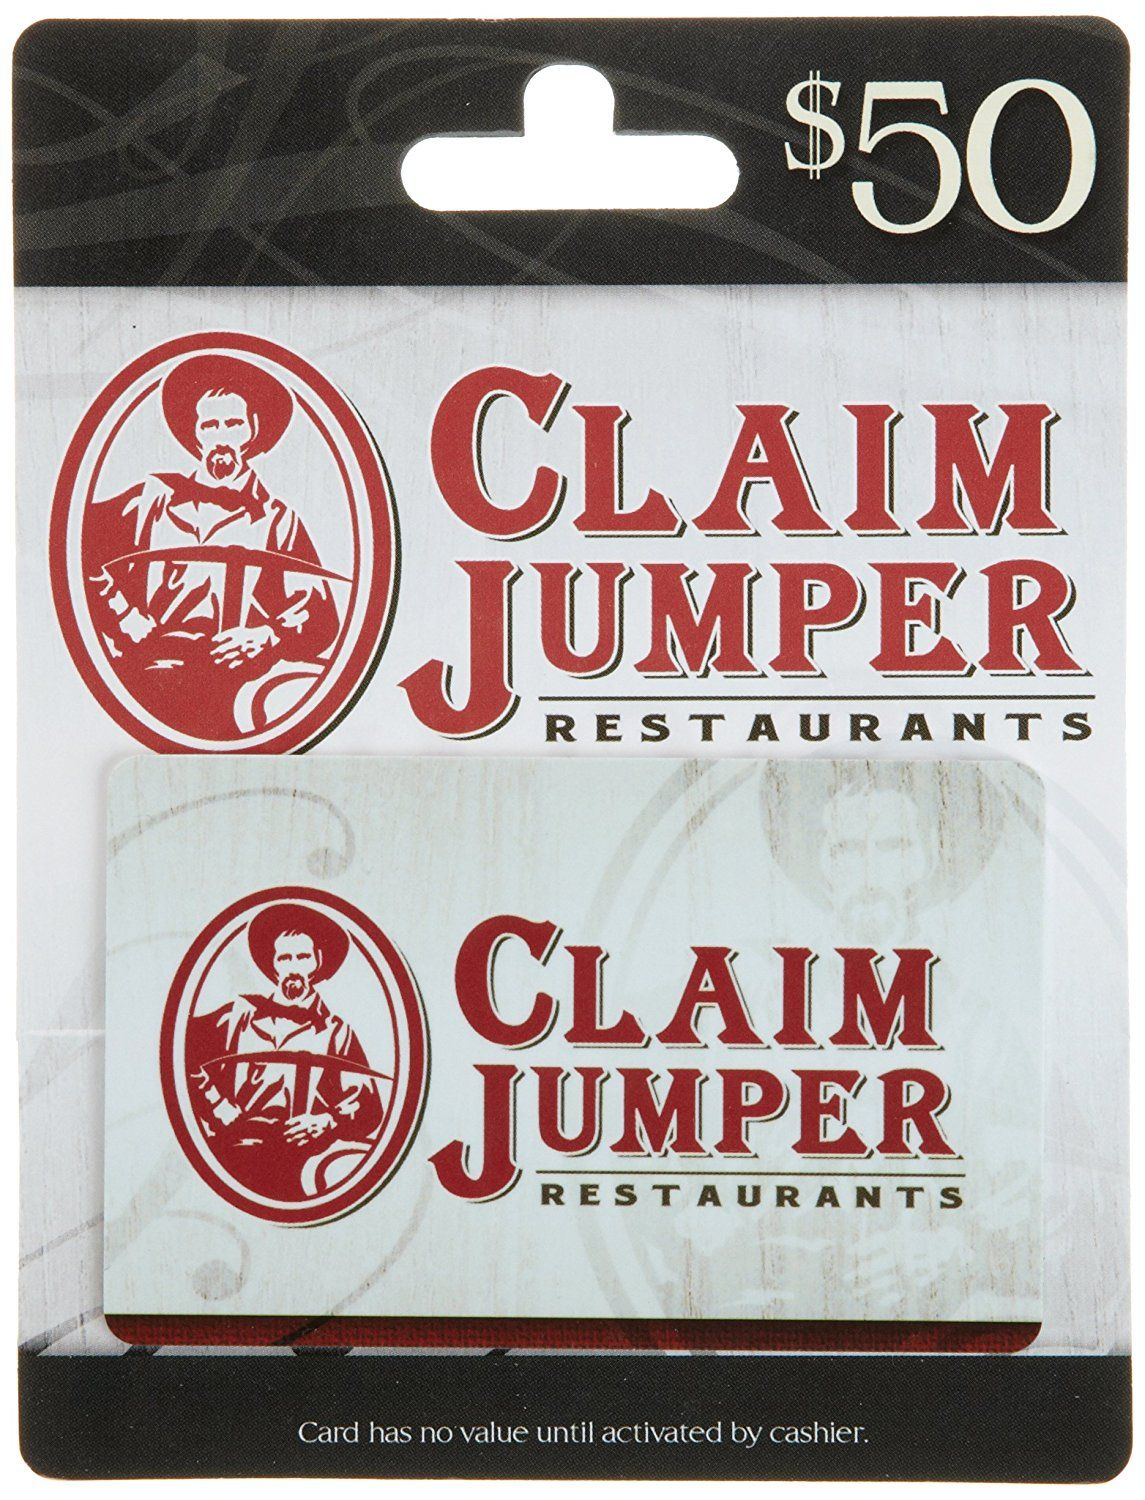 Claim jumper gift card tried it love it click the